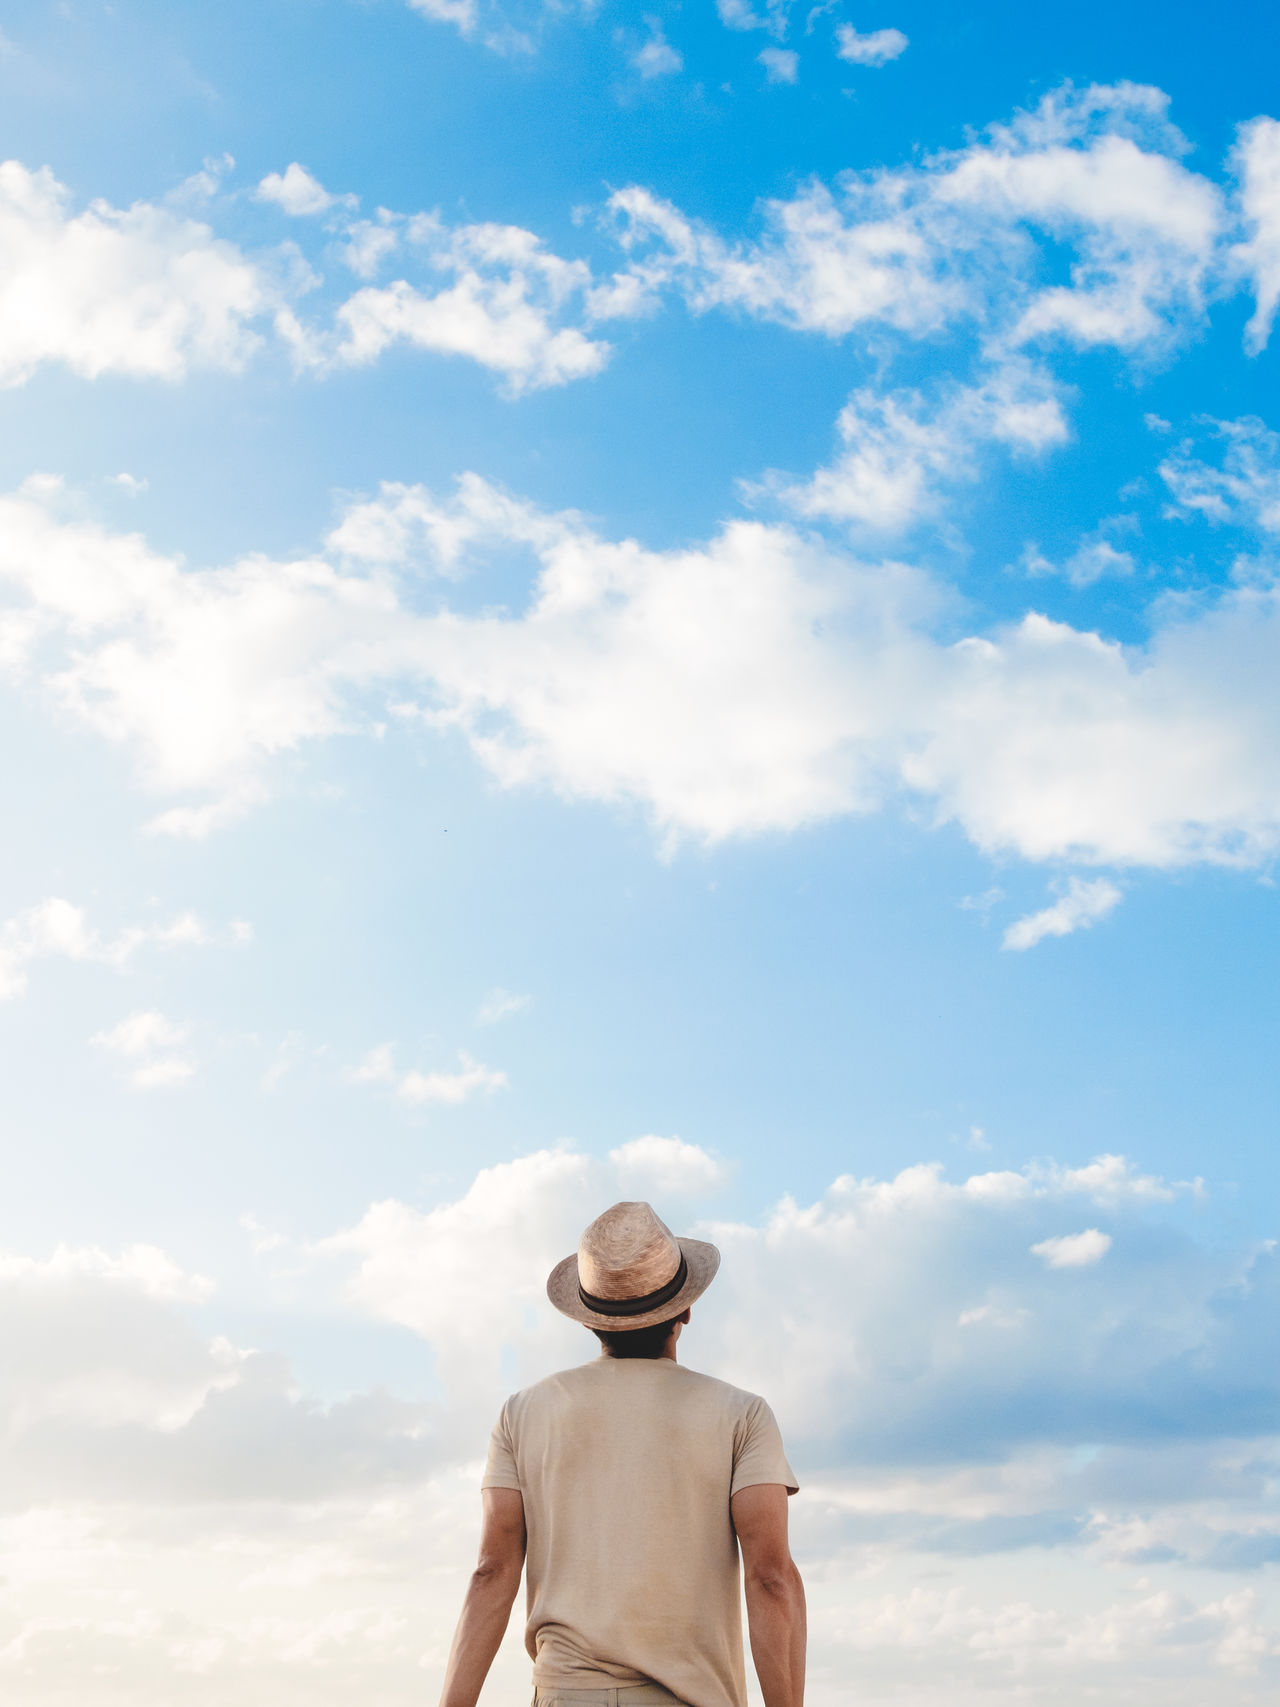 Beyond Cloud - Sky Day Destiny Future Hopes And Dreams Nature One Person Outdoors People Real People Sky Sky Is The Limit Young Men